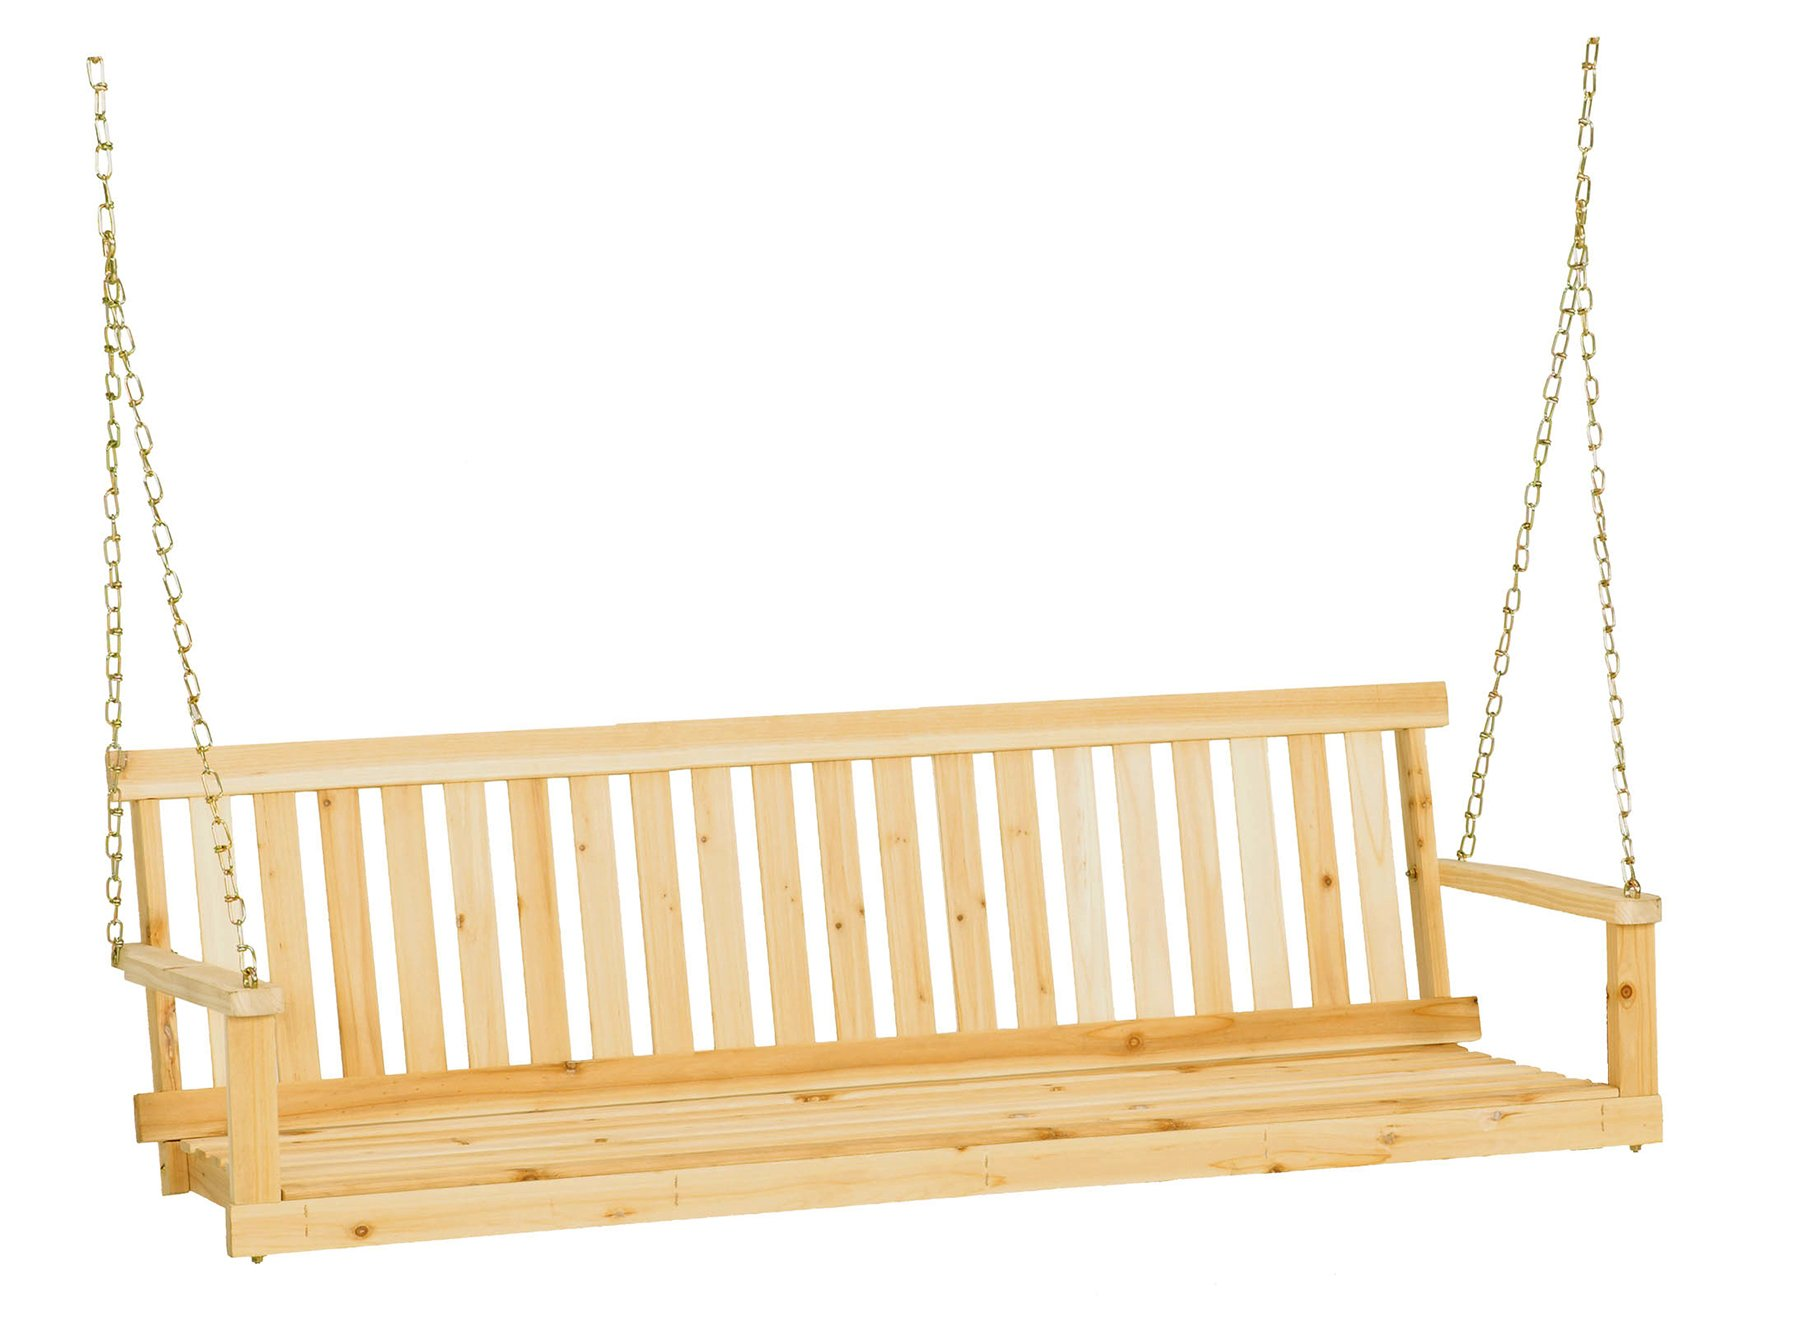 Wood 3 Person Porch Swing Set Unfinished Cypress Patio